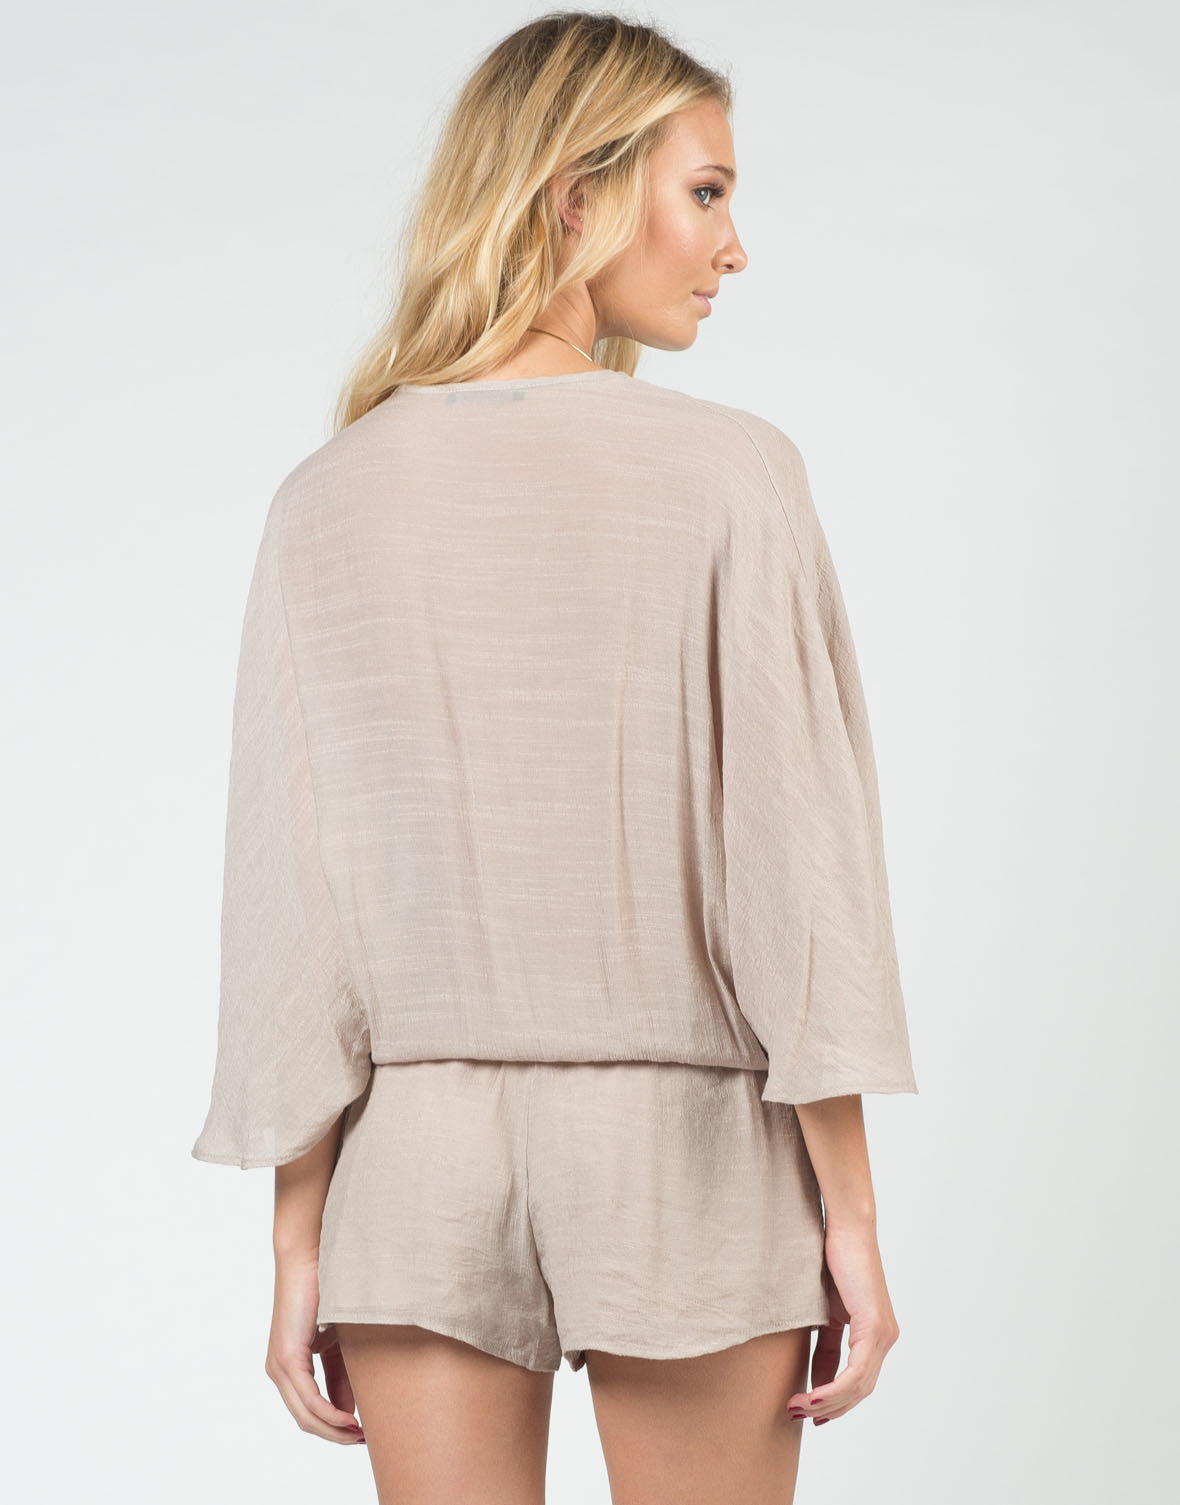 Back View of Woven Little Romper